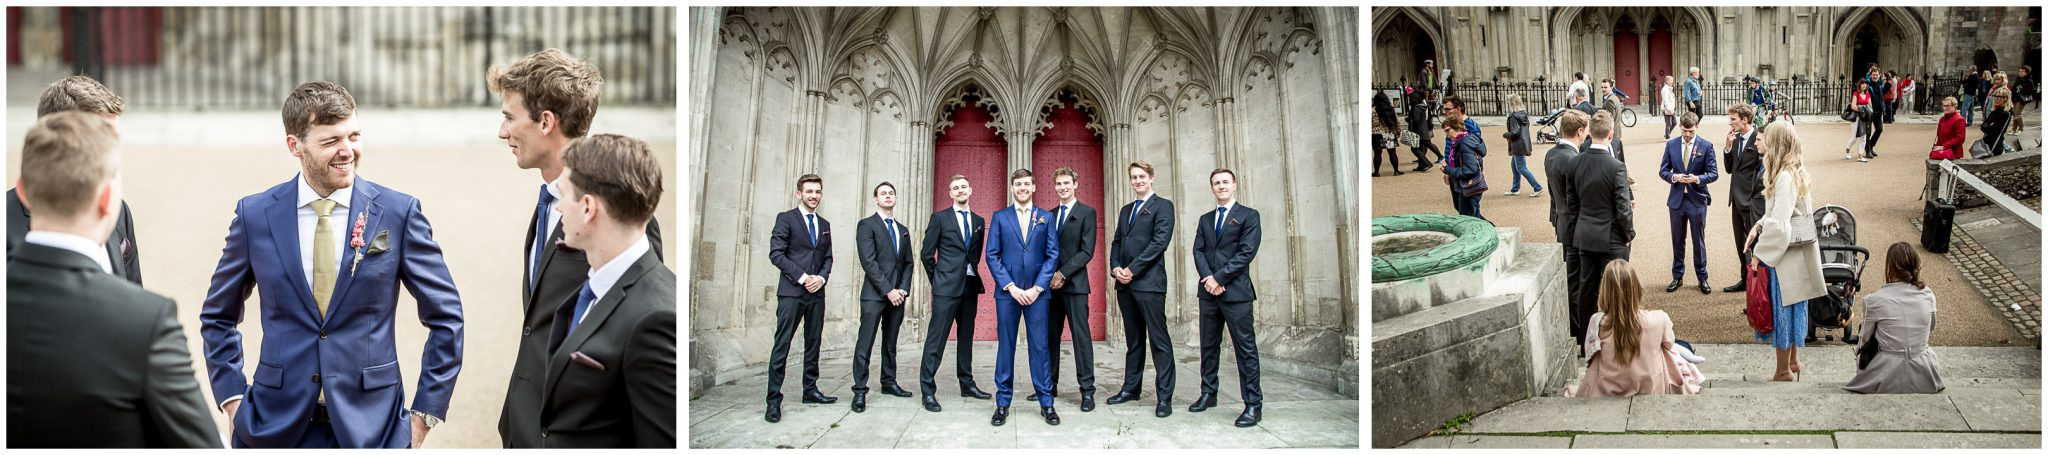 winchester cathedral wedding photography groom before ceremony